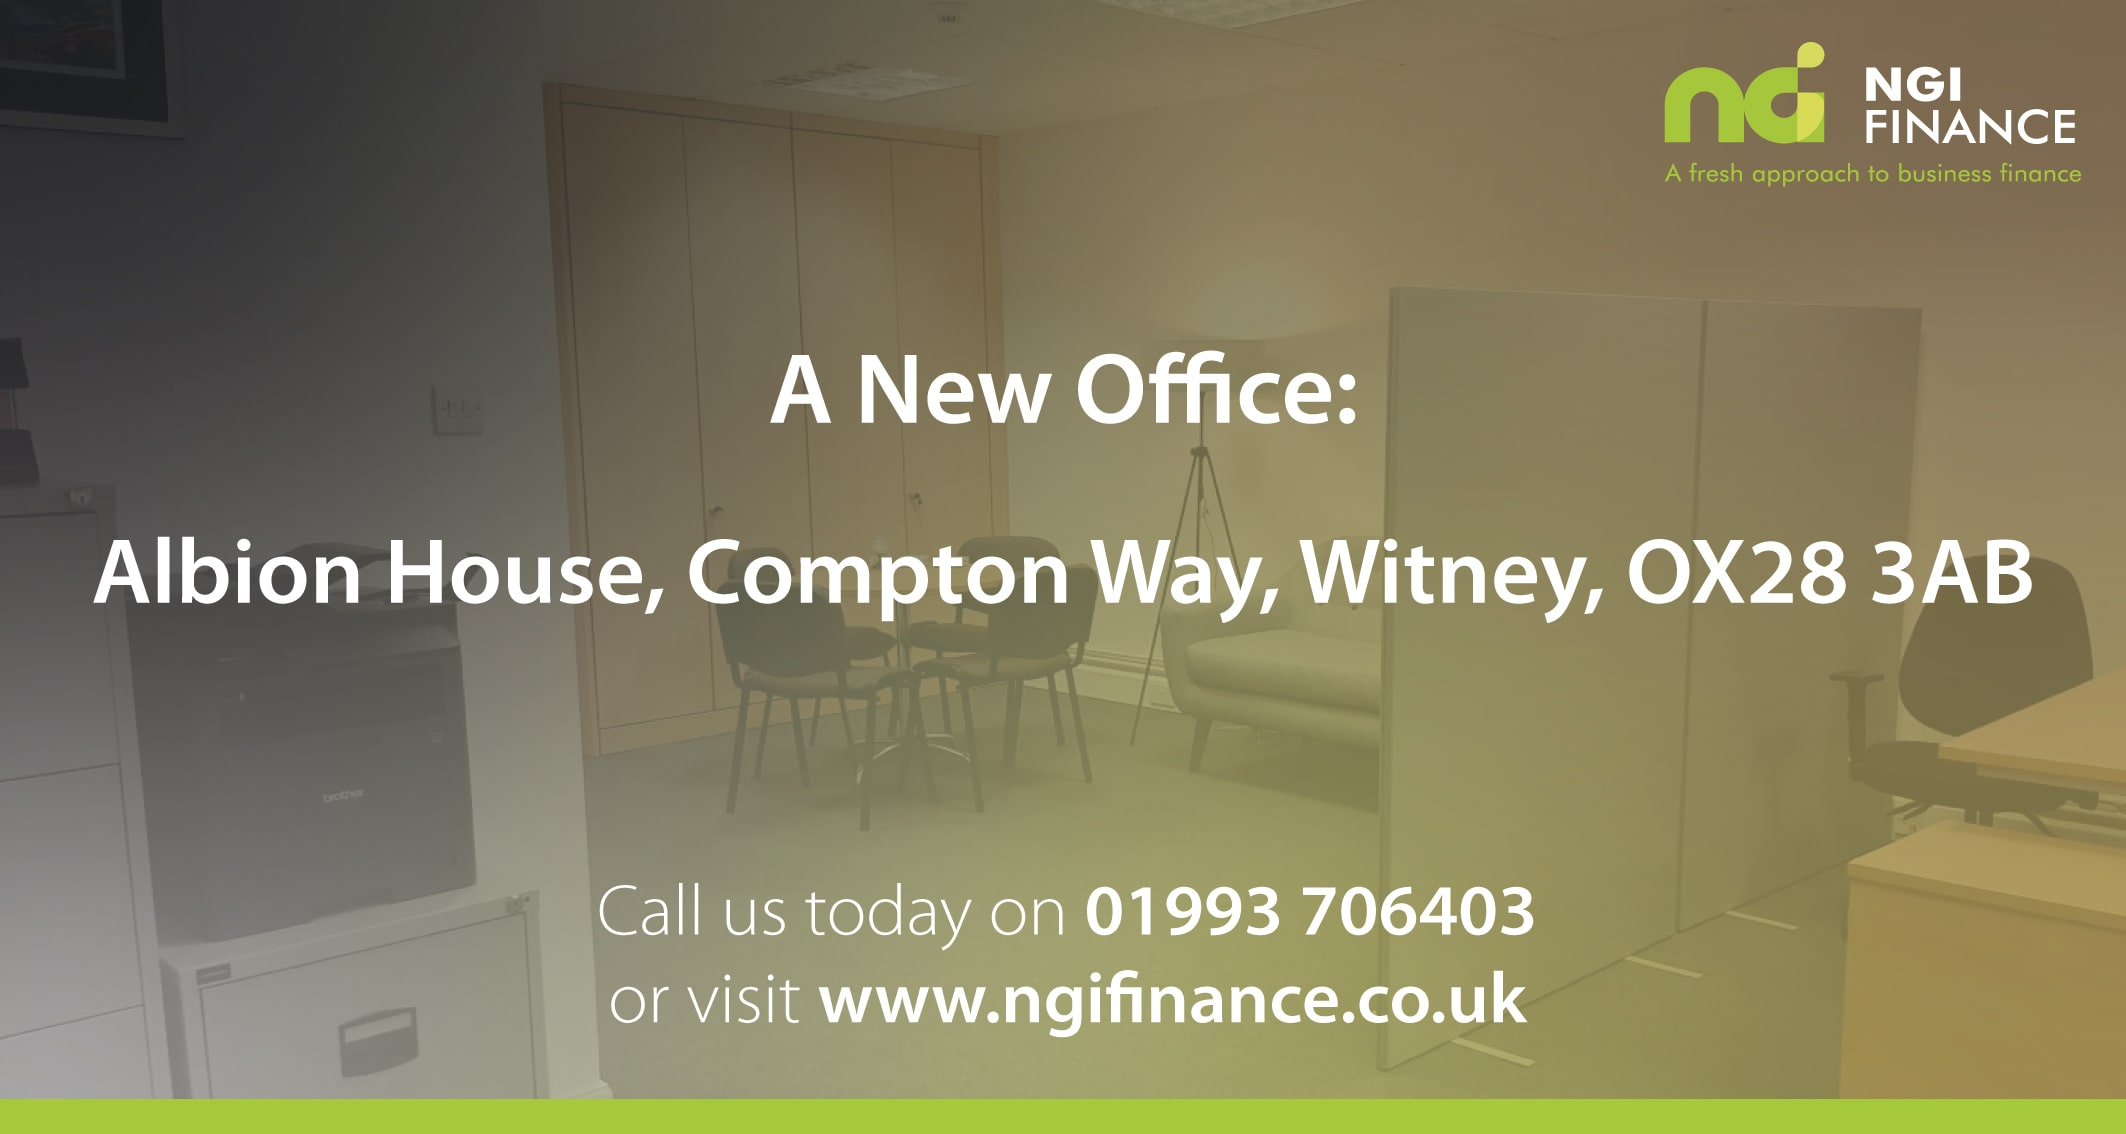 New Office Location | NGI Finance | Fresh Approach to Business Finance | Low Rate Business Loan | Help with Business Finance